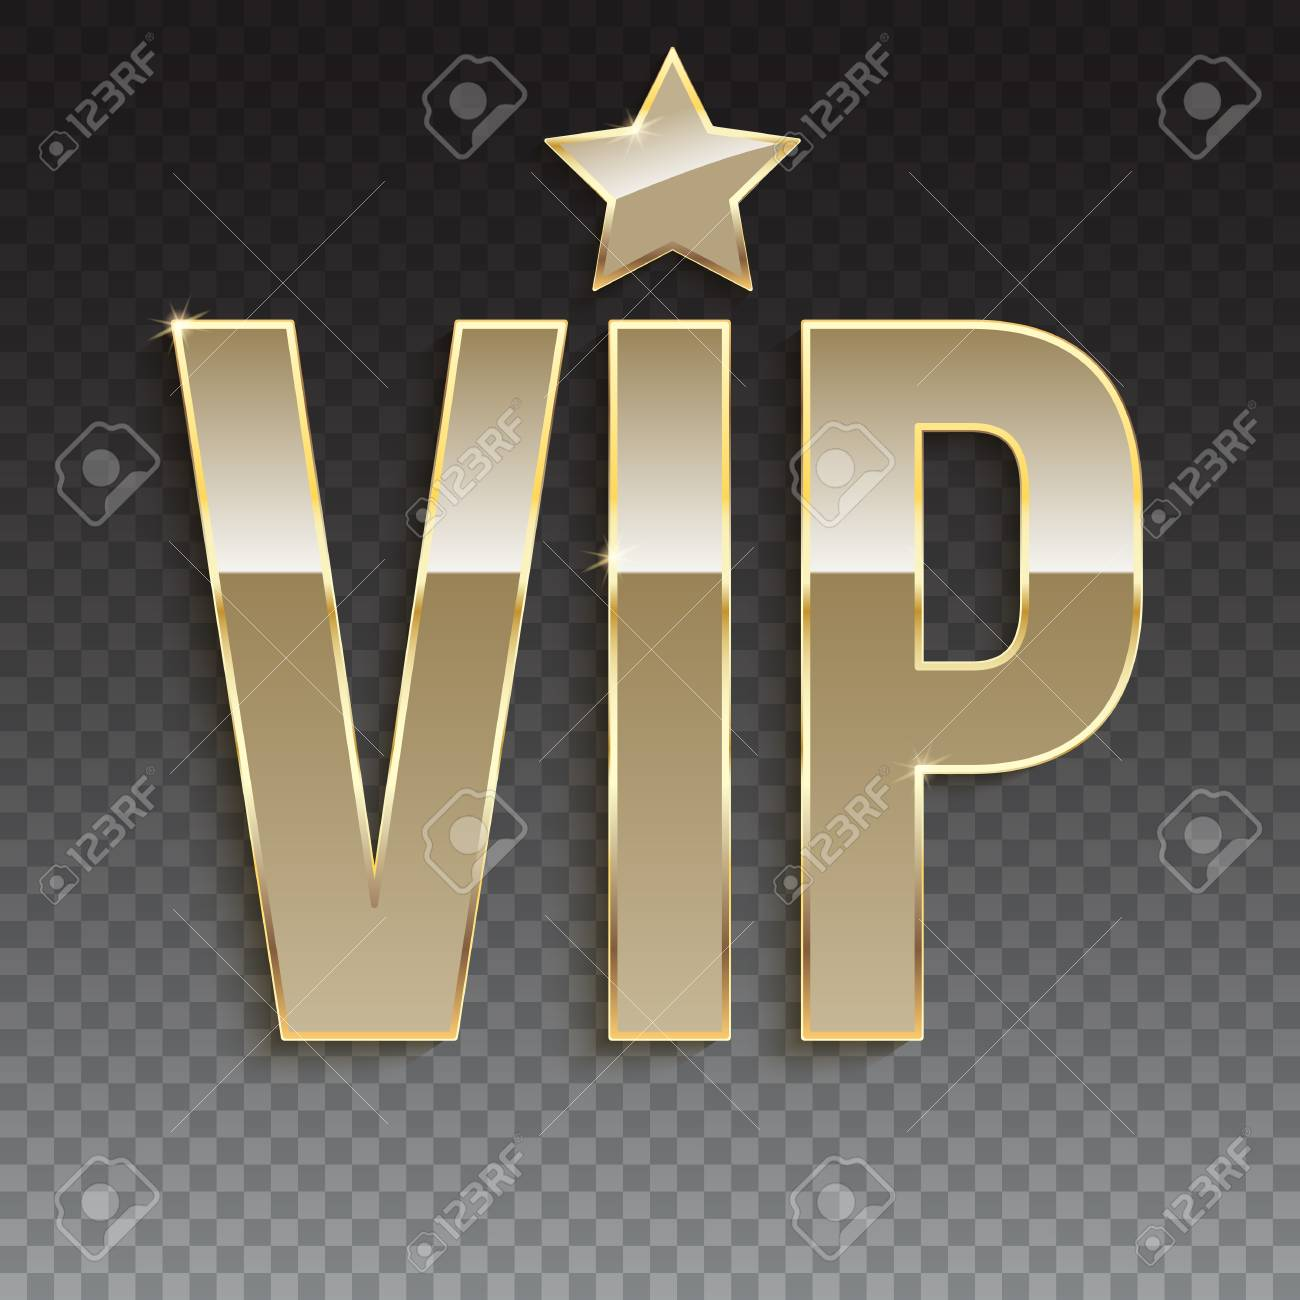 Golden Symbol Of Exclusivity The Label Vip Very Important Person